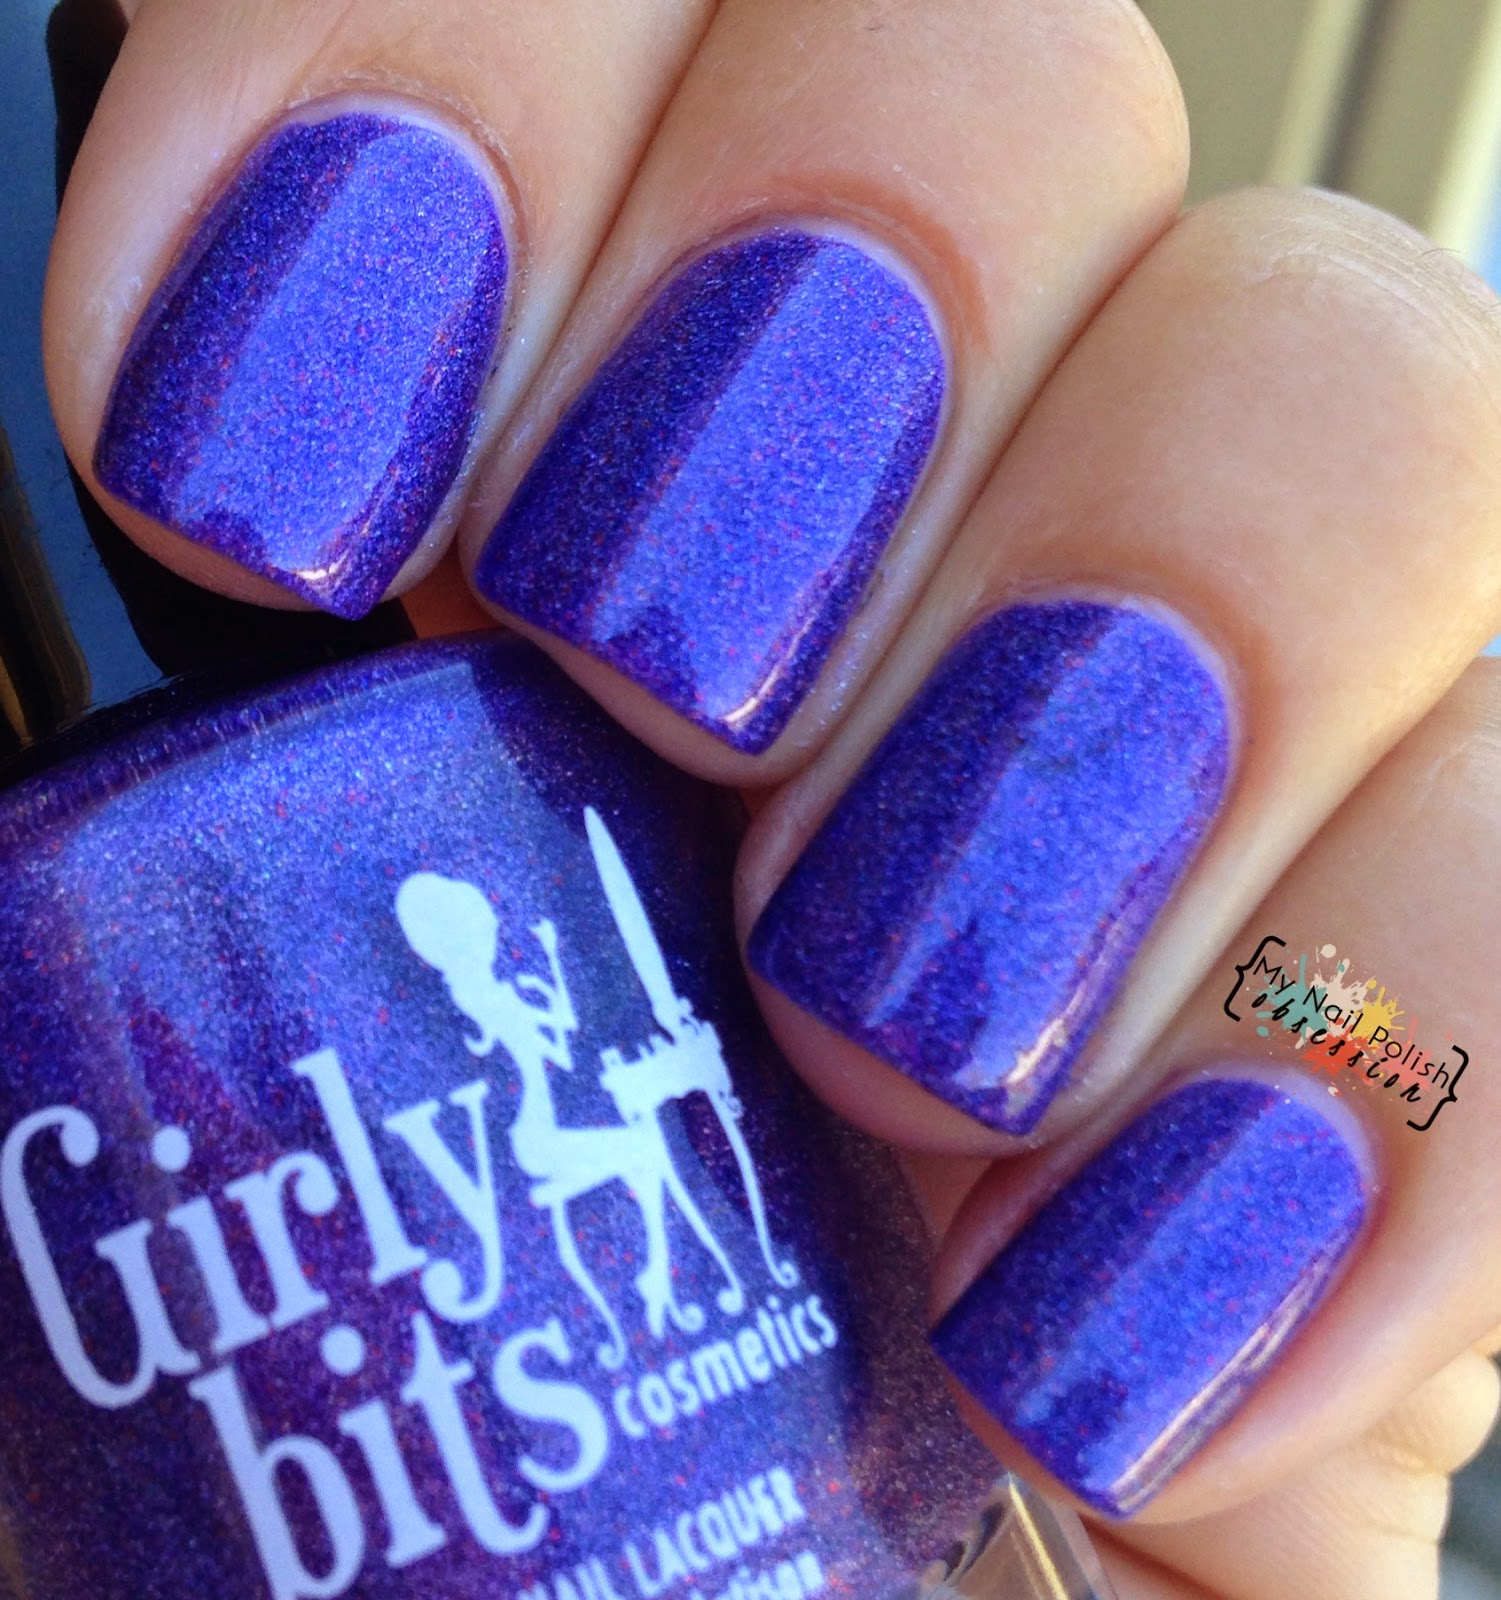 Girly Bits Protect Your Girly Bits